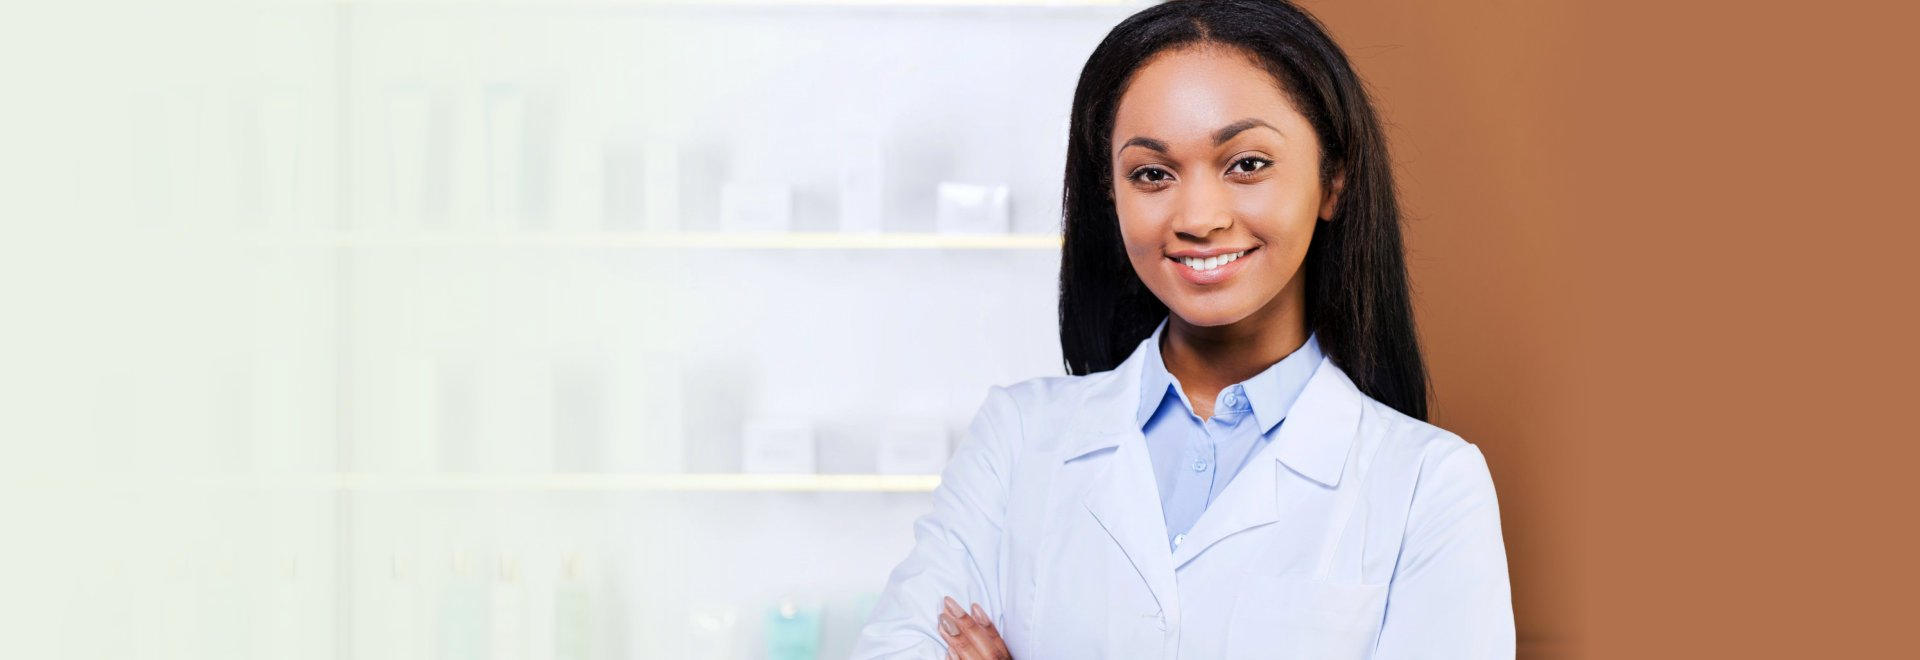 beautiful and confident pharmacist smiling